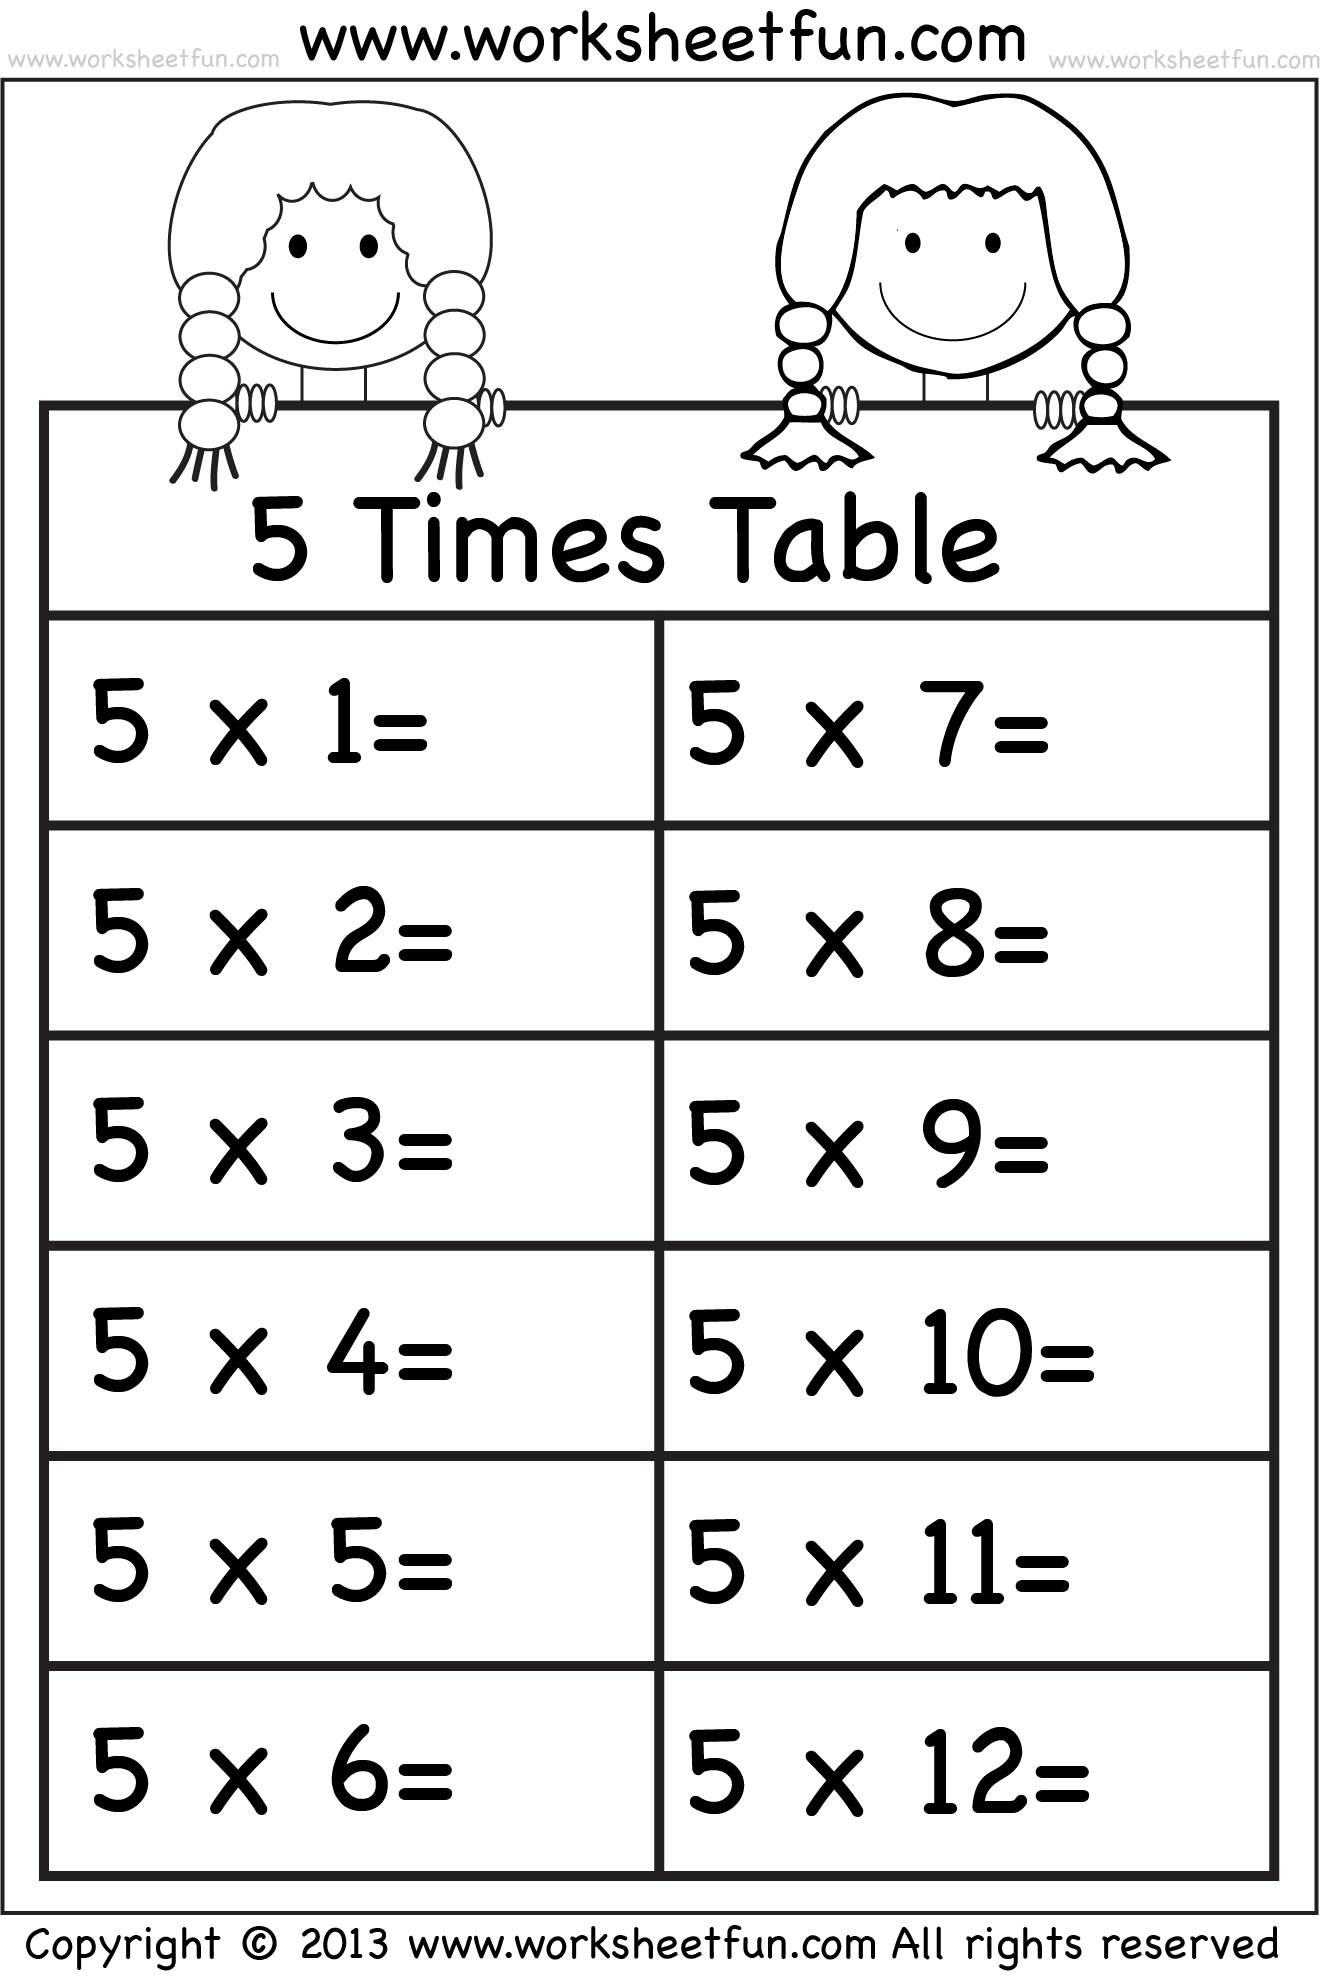 Times Tables Worksheets 2, 3, 4, 5, 6, 7, 8, 9, 10, 11, 2 Times